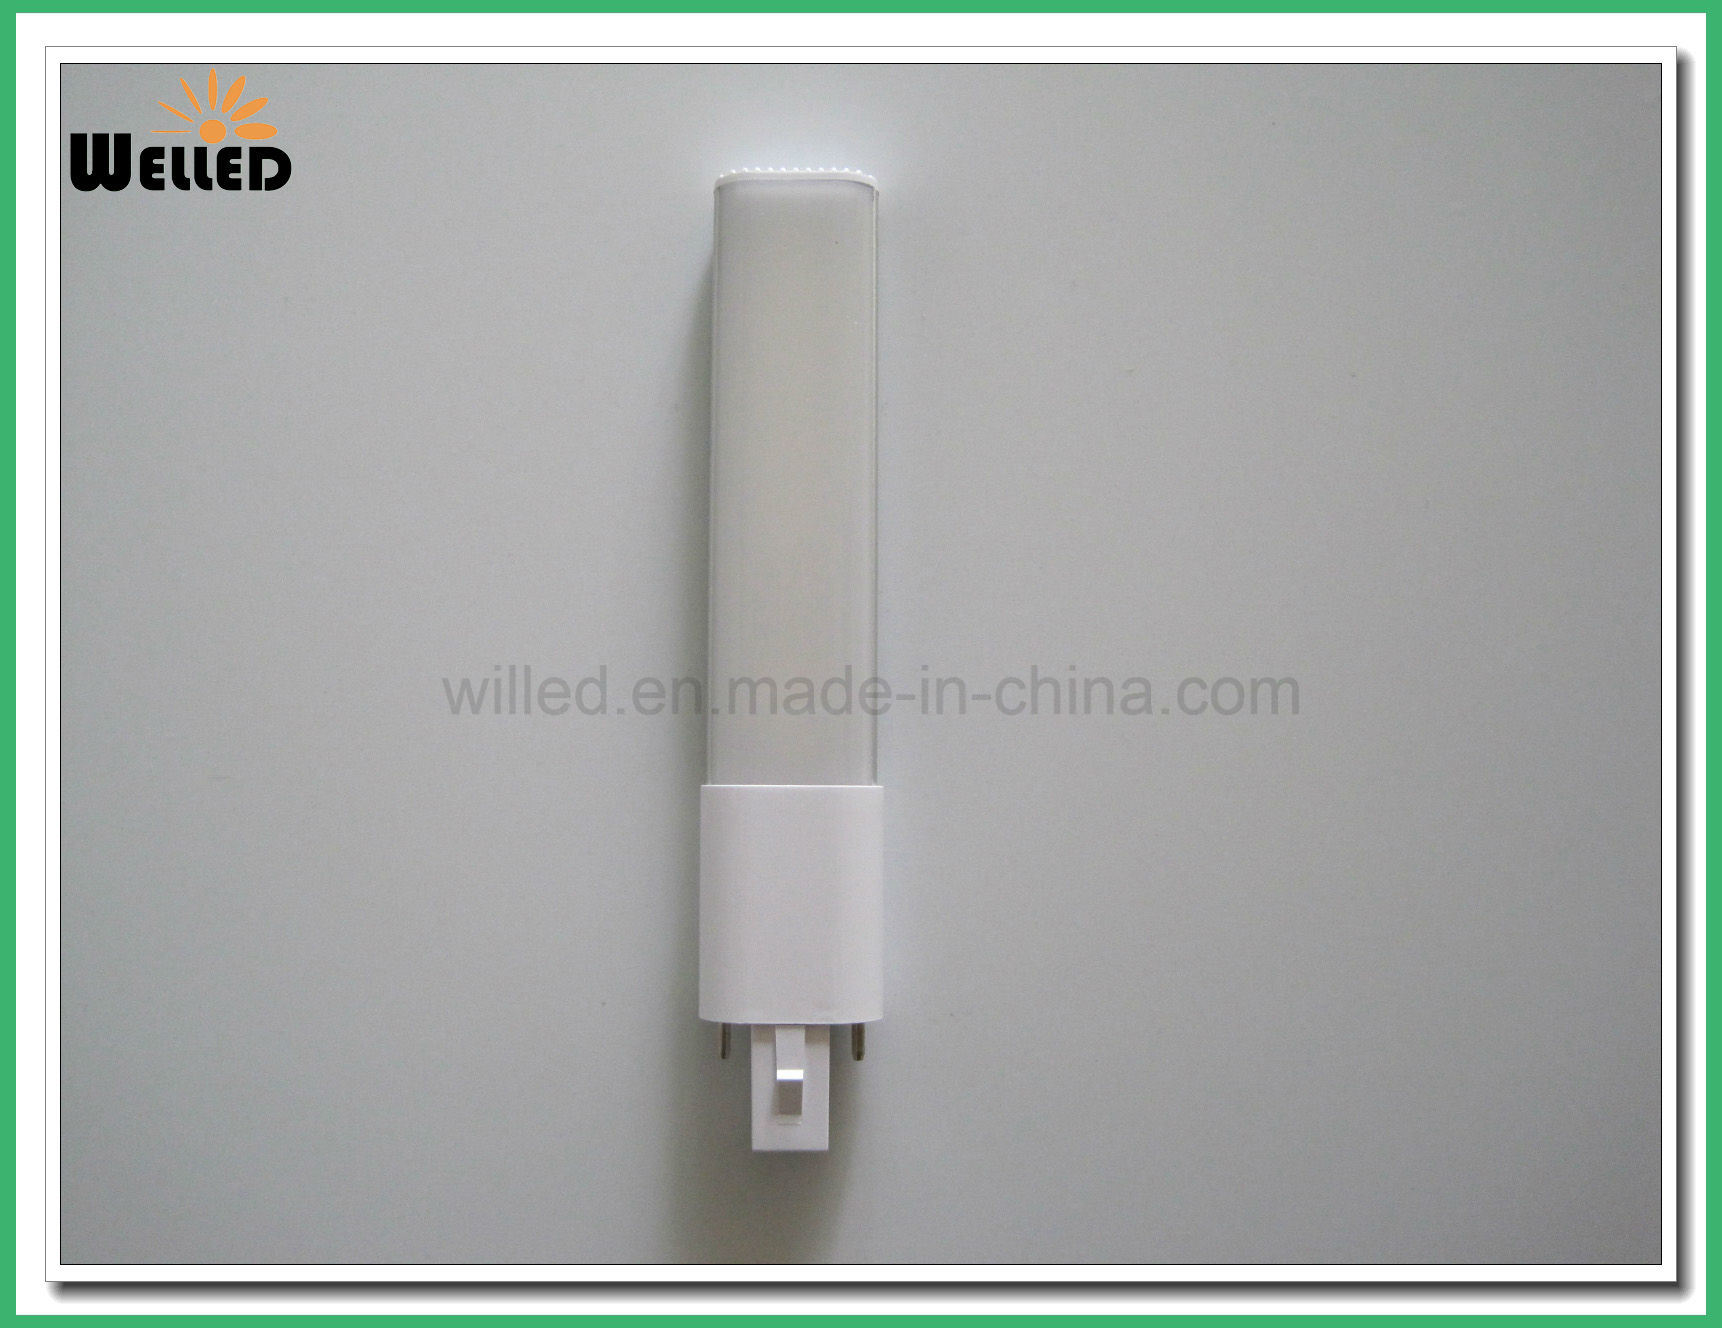 6W PLC LED Pl Tube Light G23 Gx23 LED Lamp Light for CFL Replacements